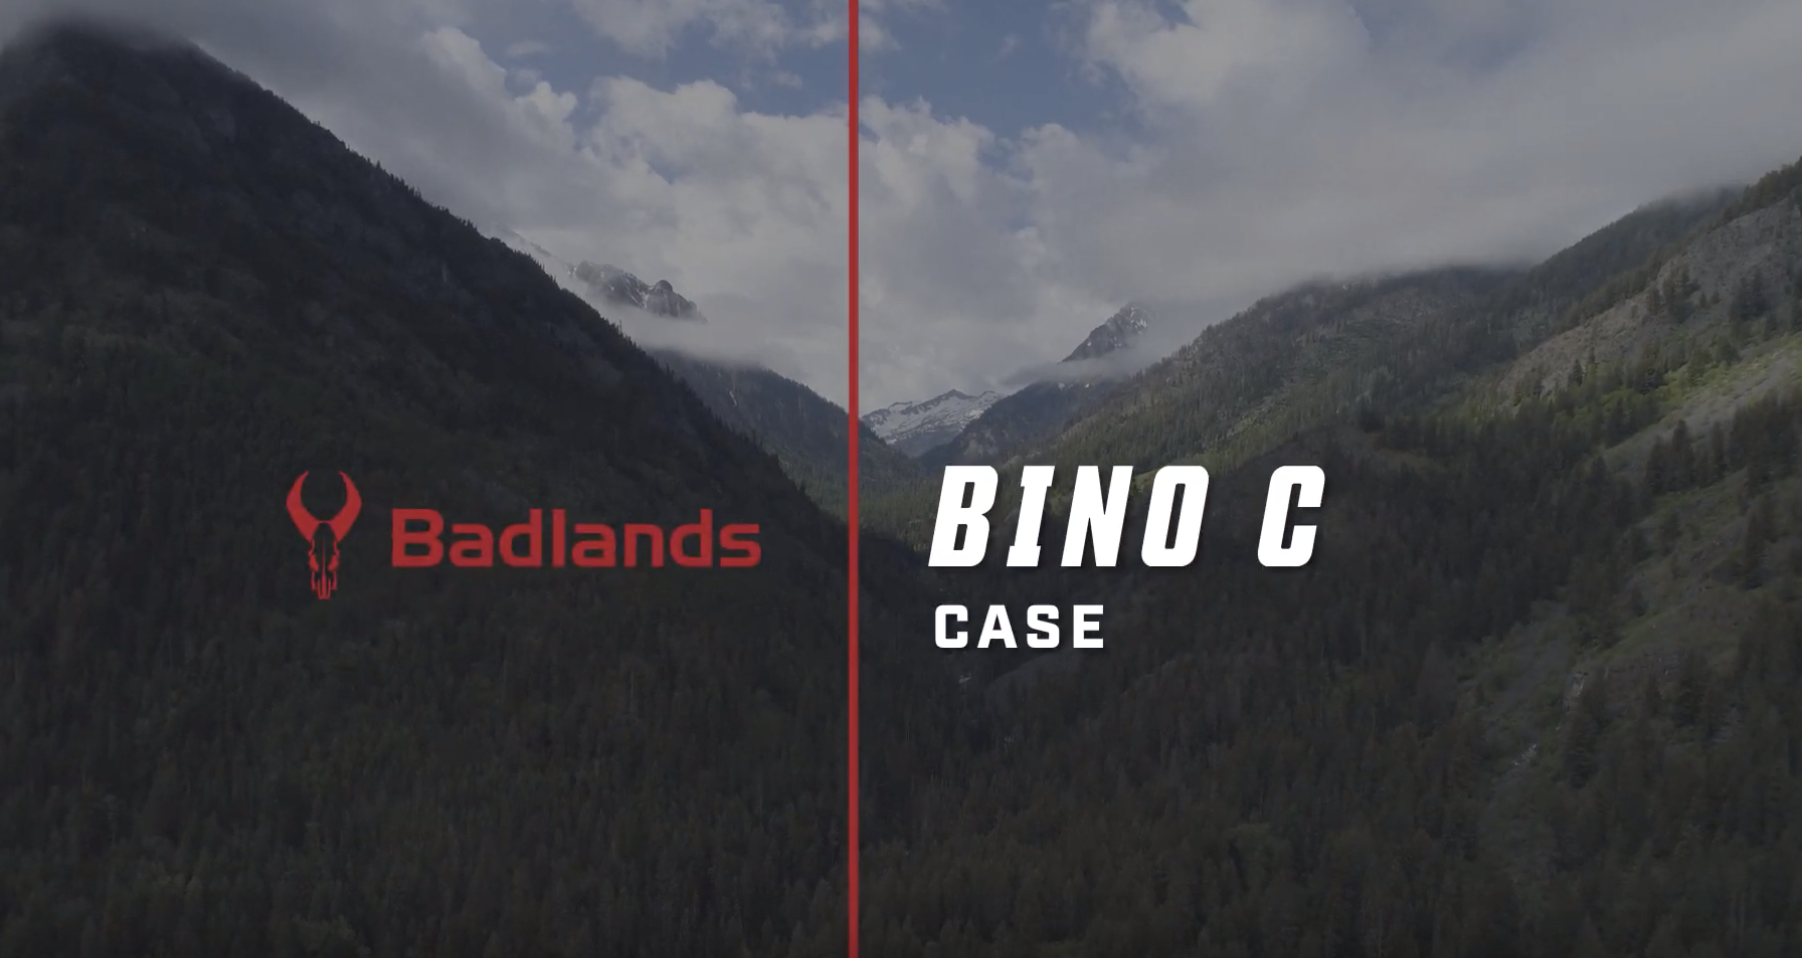 Learn more about the Bino C Case